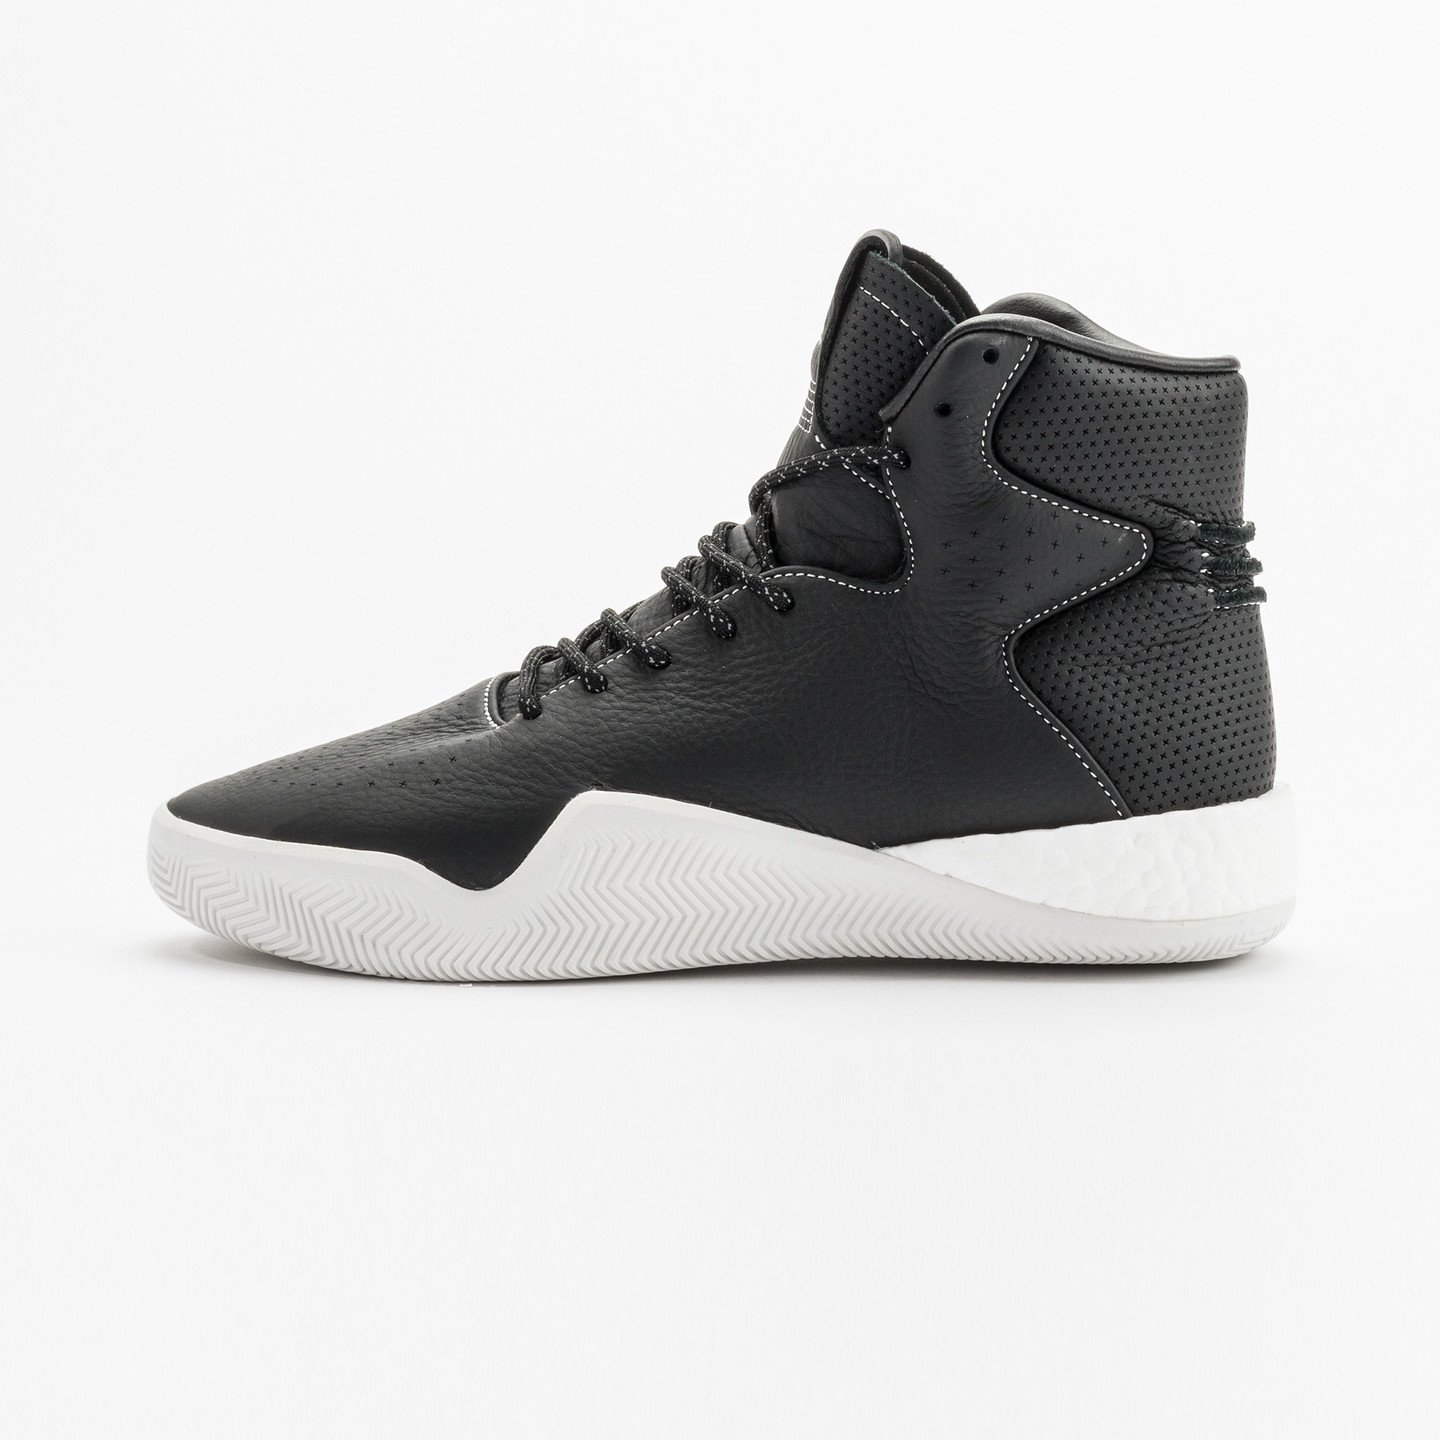 Adidas Tubular Instinct Boost Core Black / Crystal White BB8401